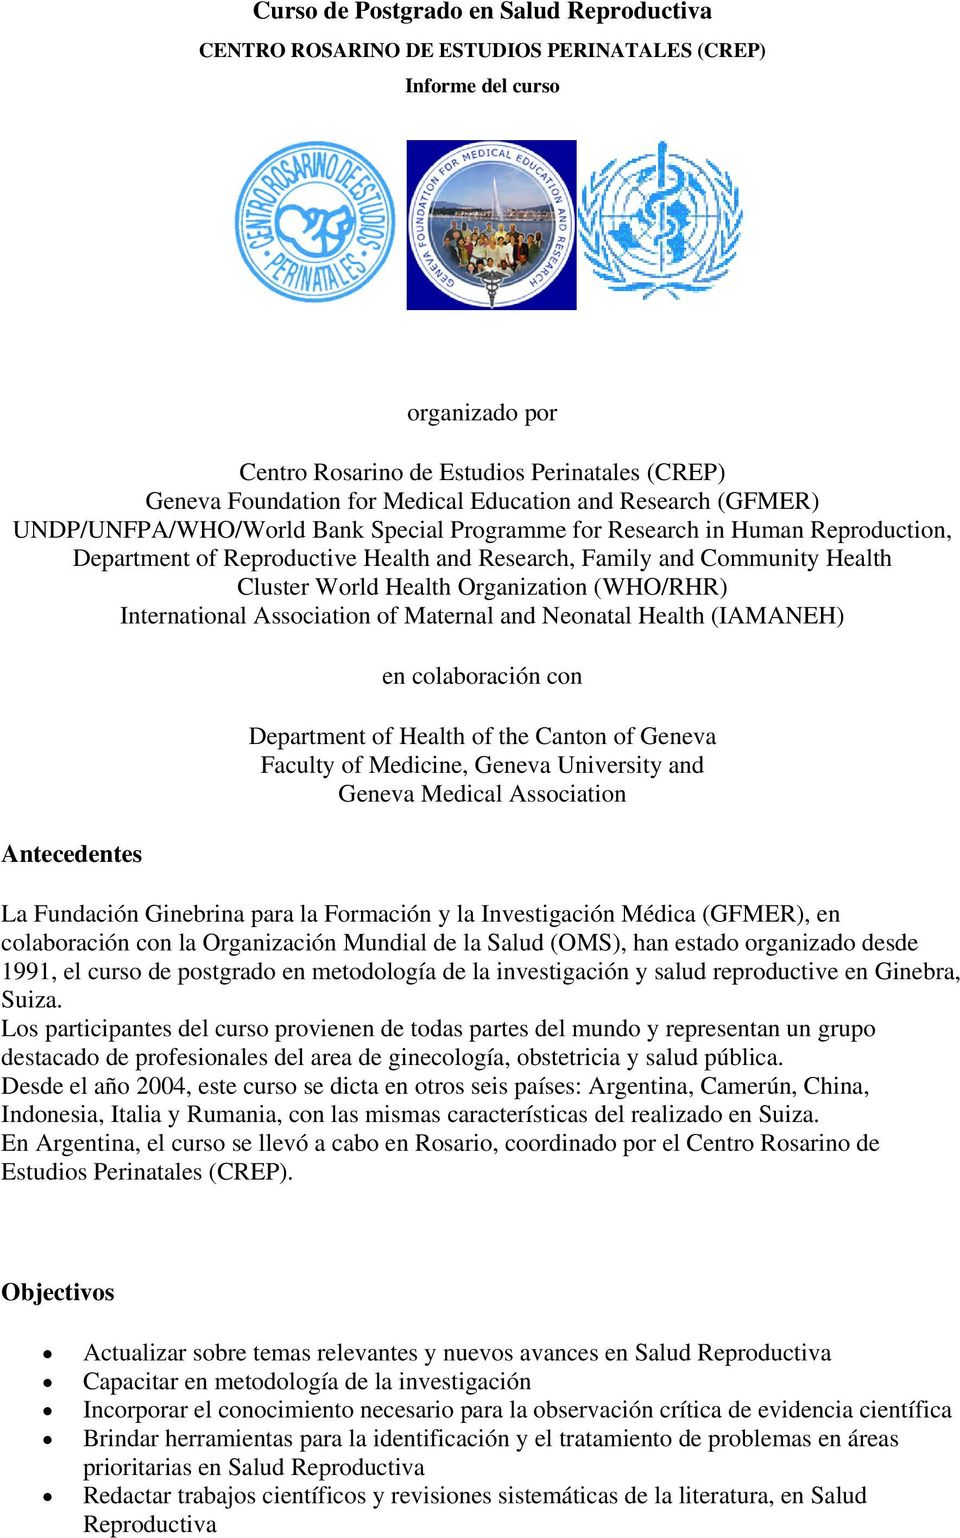 World Health Organization (WHO/RHR) International Association of Maternal and Neonatal Health (IAMANEH) Antecedentes en colaboración con Department of Health of the Canton of Geneva Faculty of